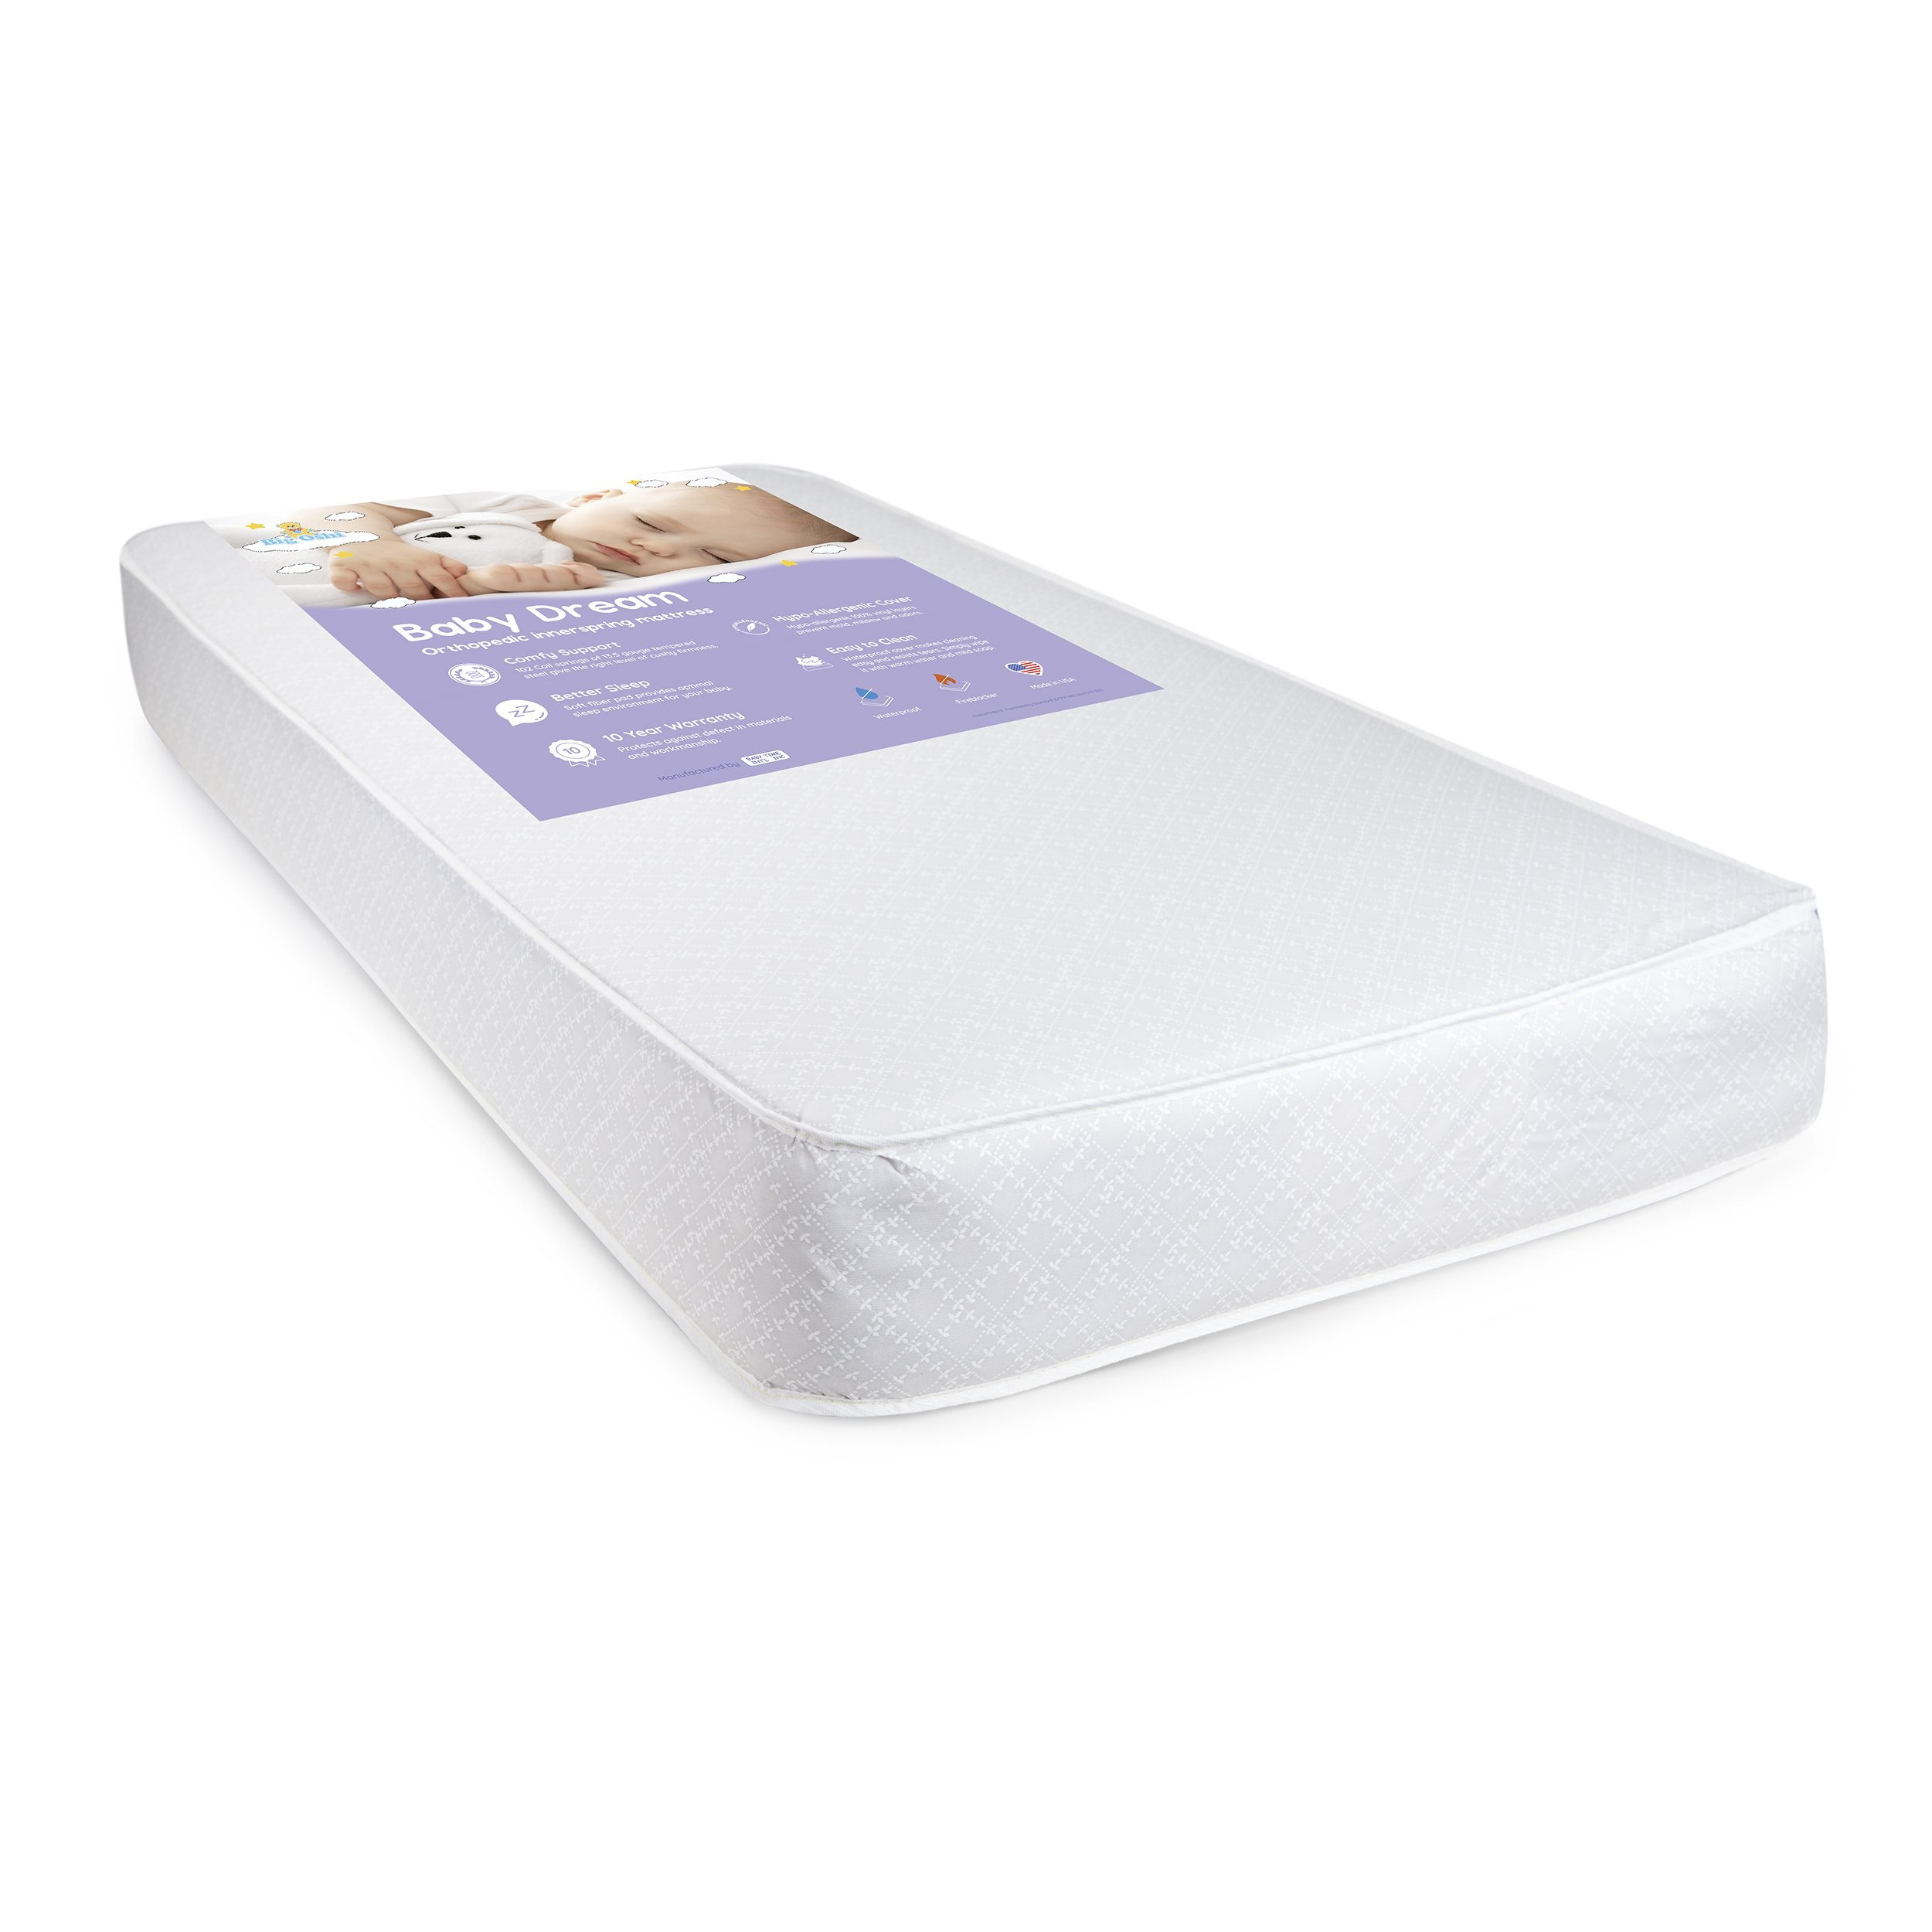 Big Oshi Full Size Thick Baby Crib Mattress - Orthopedic Innerspring Mattress with 102 Coil Springs - Includes Waterproof Cover - Make Clean up Easy - Safe, Hypoallergenic Material - White, 52''x27.5'' by Big Oshi